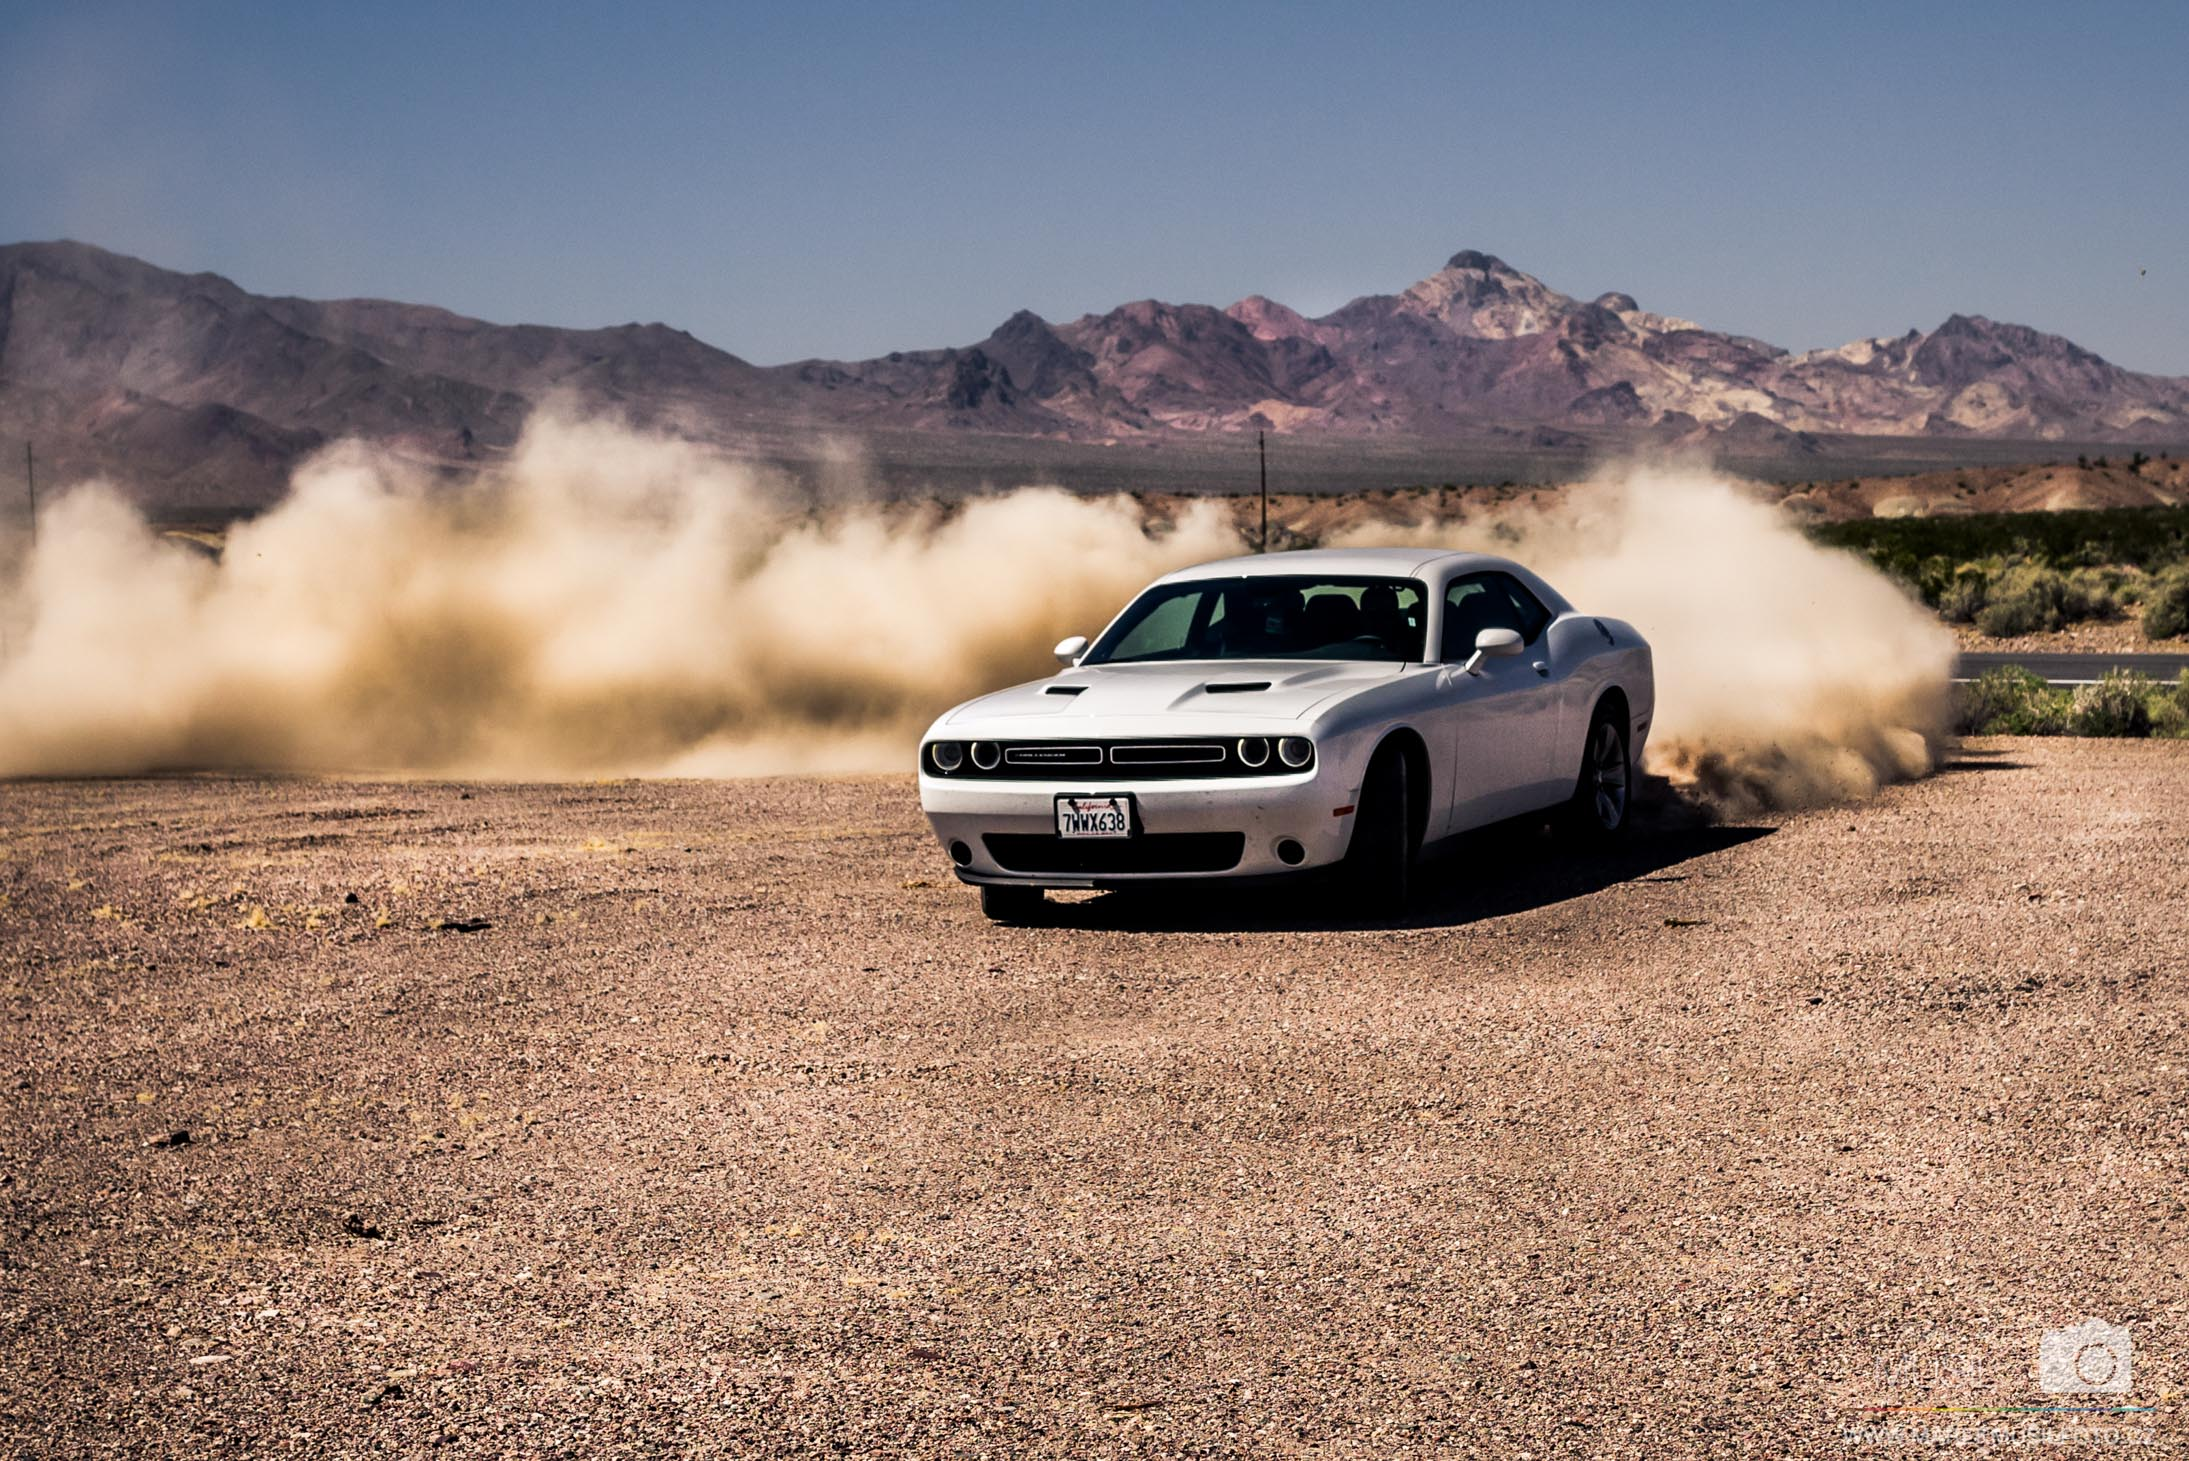 Dodge Challenger road trip